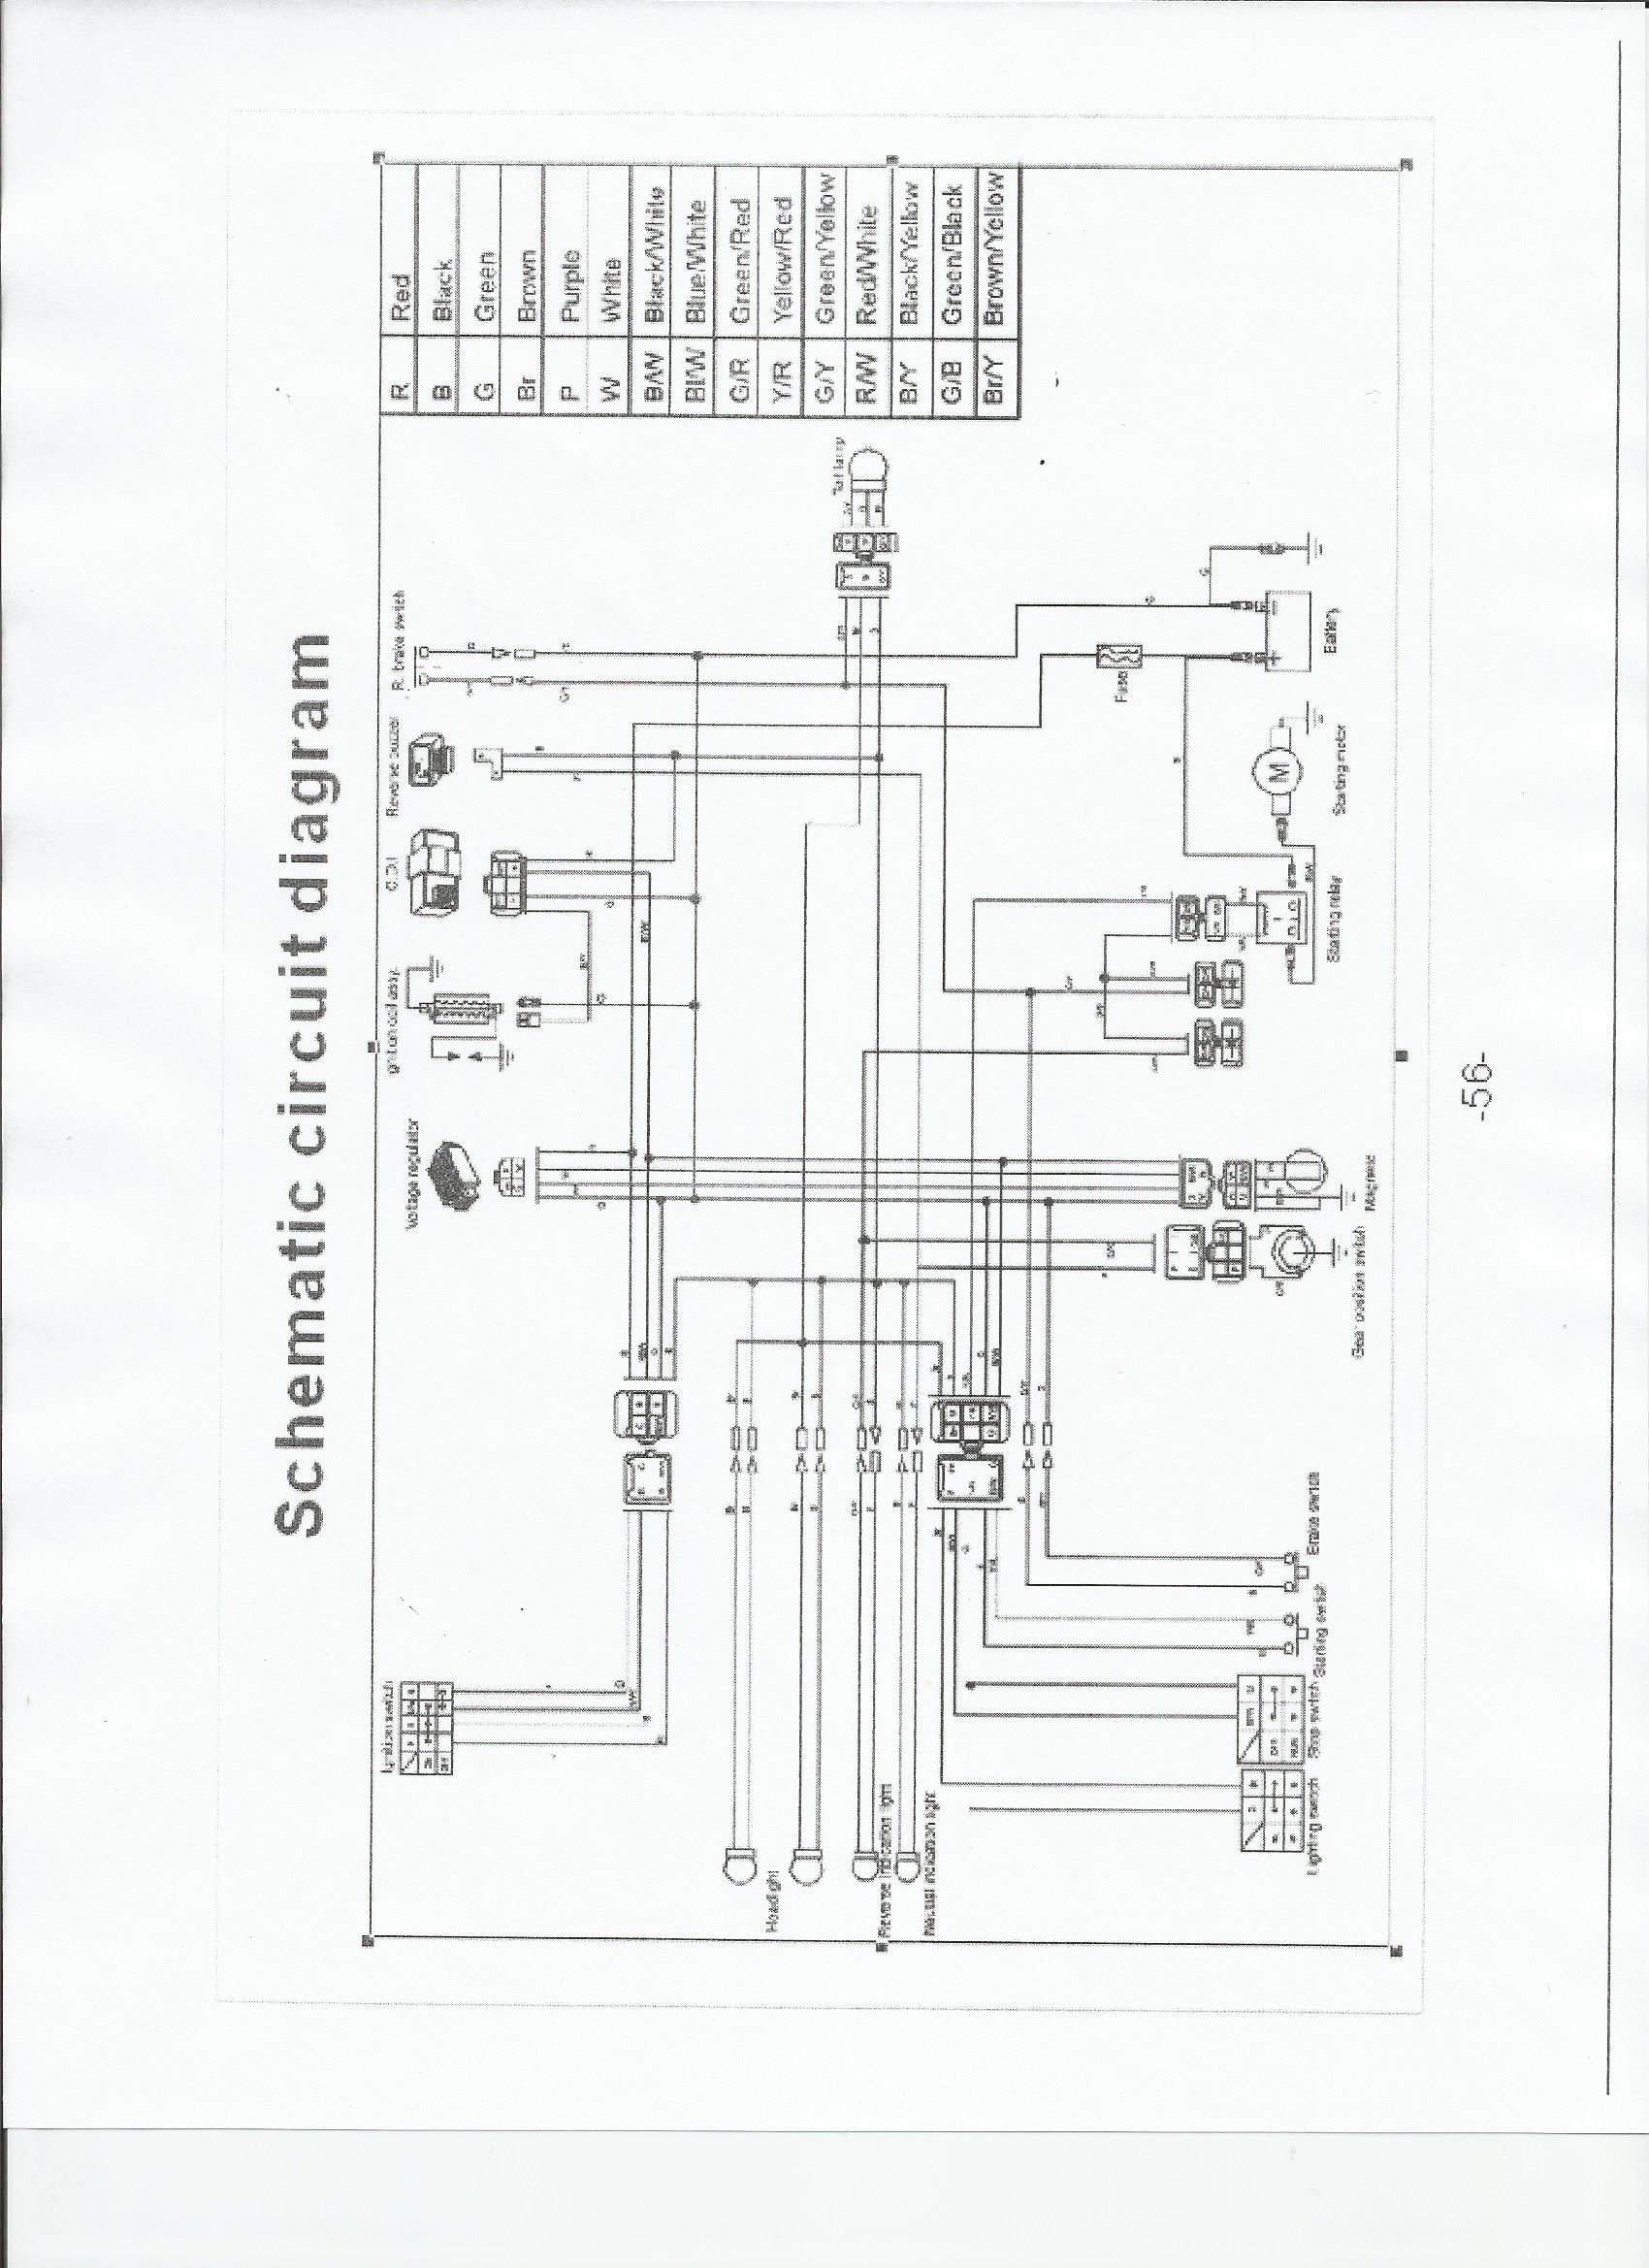 tao tao wiring schematic chinese quad wiring diagram chinese atv ignition schematic \u2022 free 150Cc Scooter Wiring Diagram at couponss.co